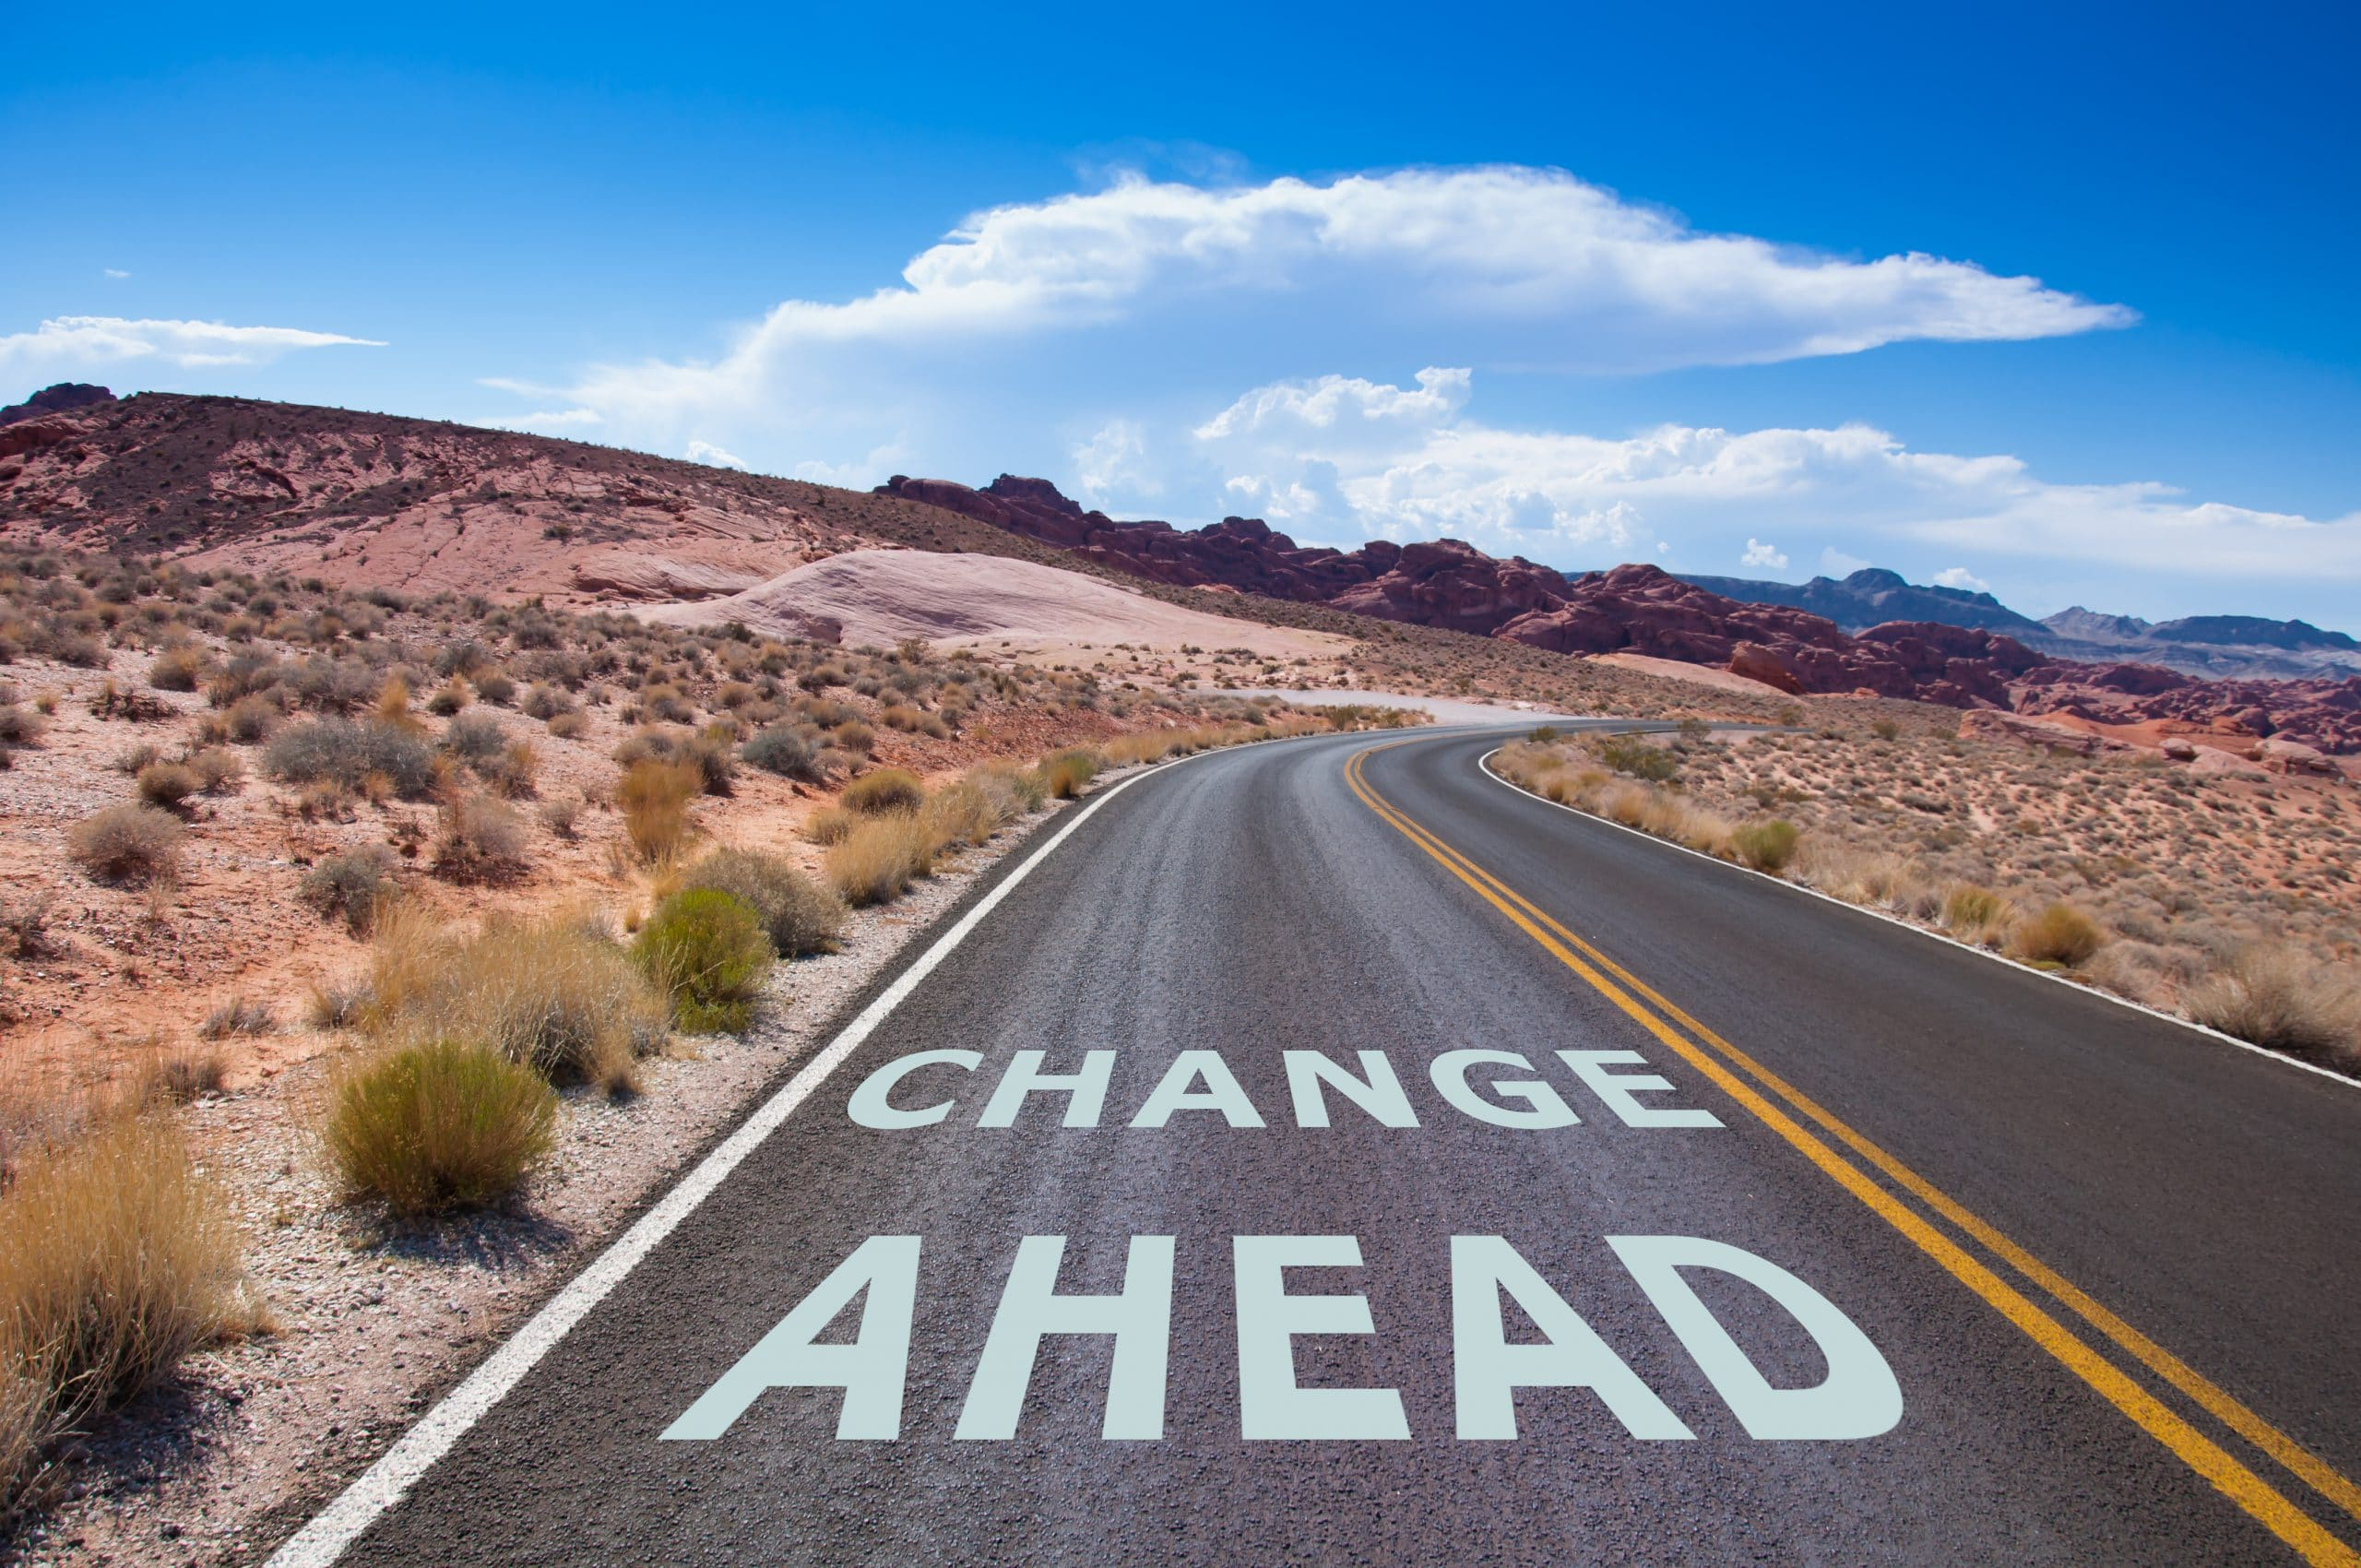 6 Ways to Manage Change More Effectively with Your Team